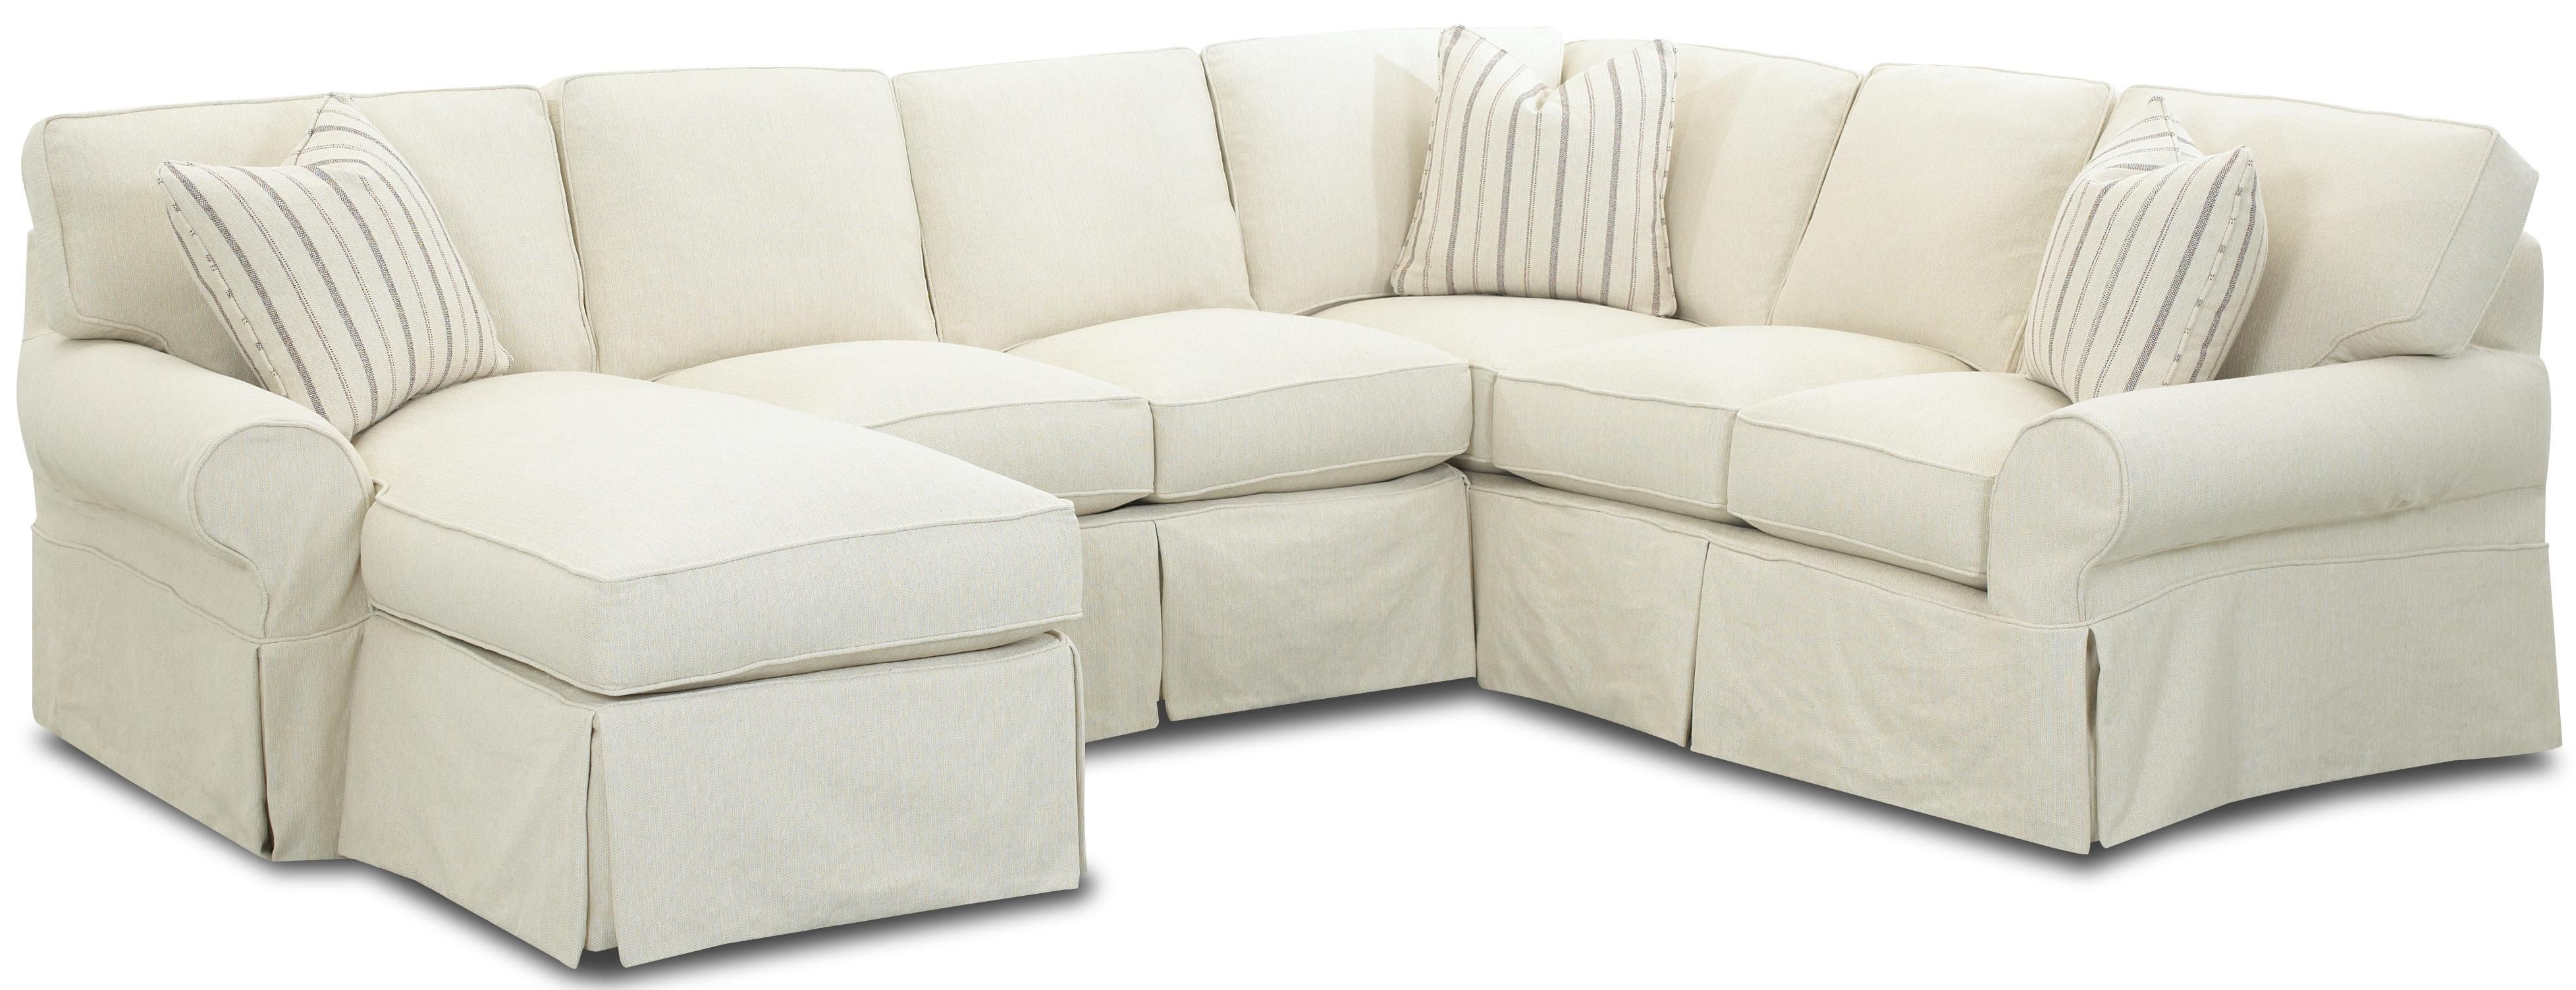 Bon Slipcover Sectional Sofa With Chaise